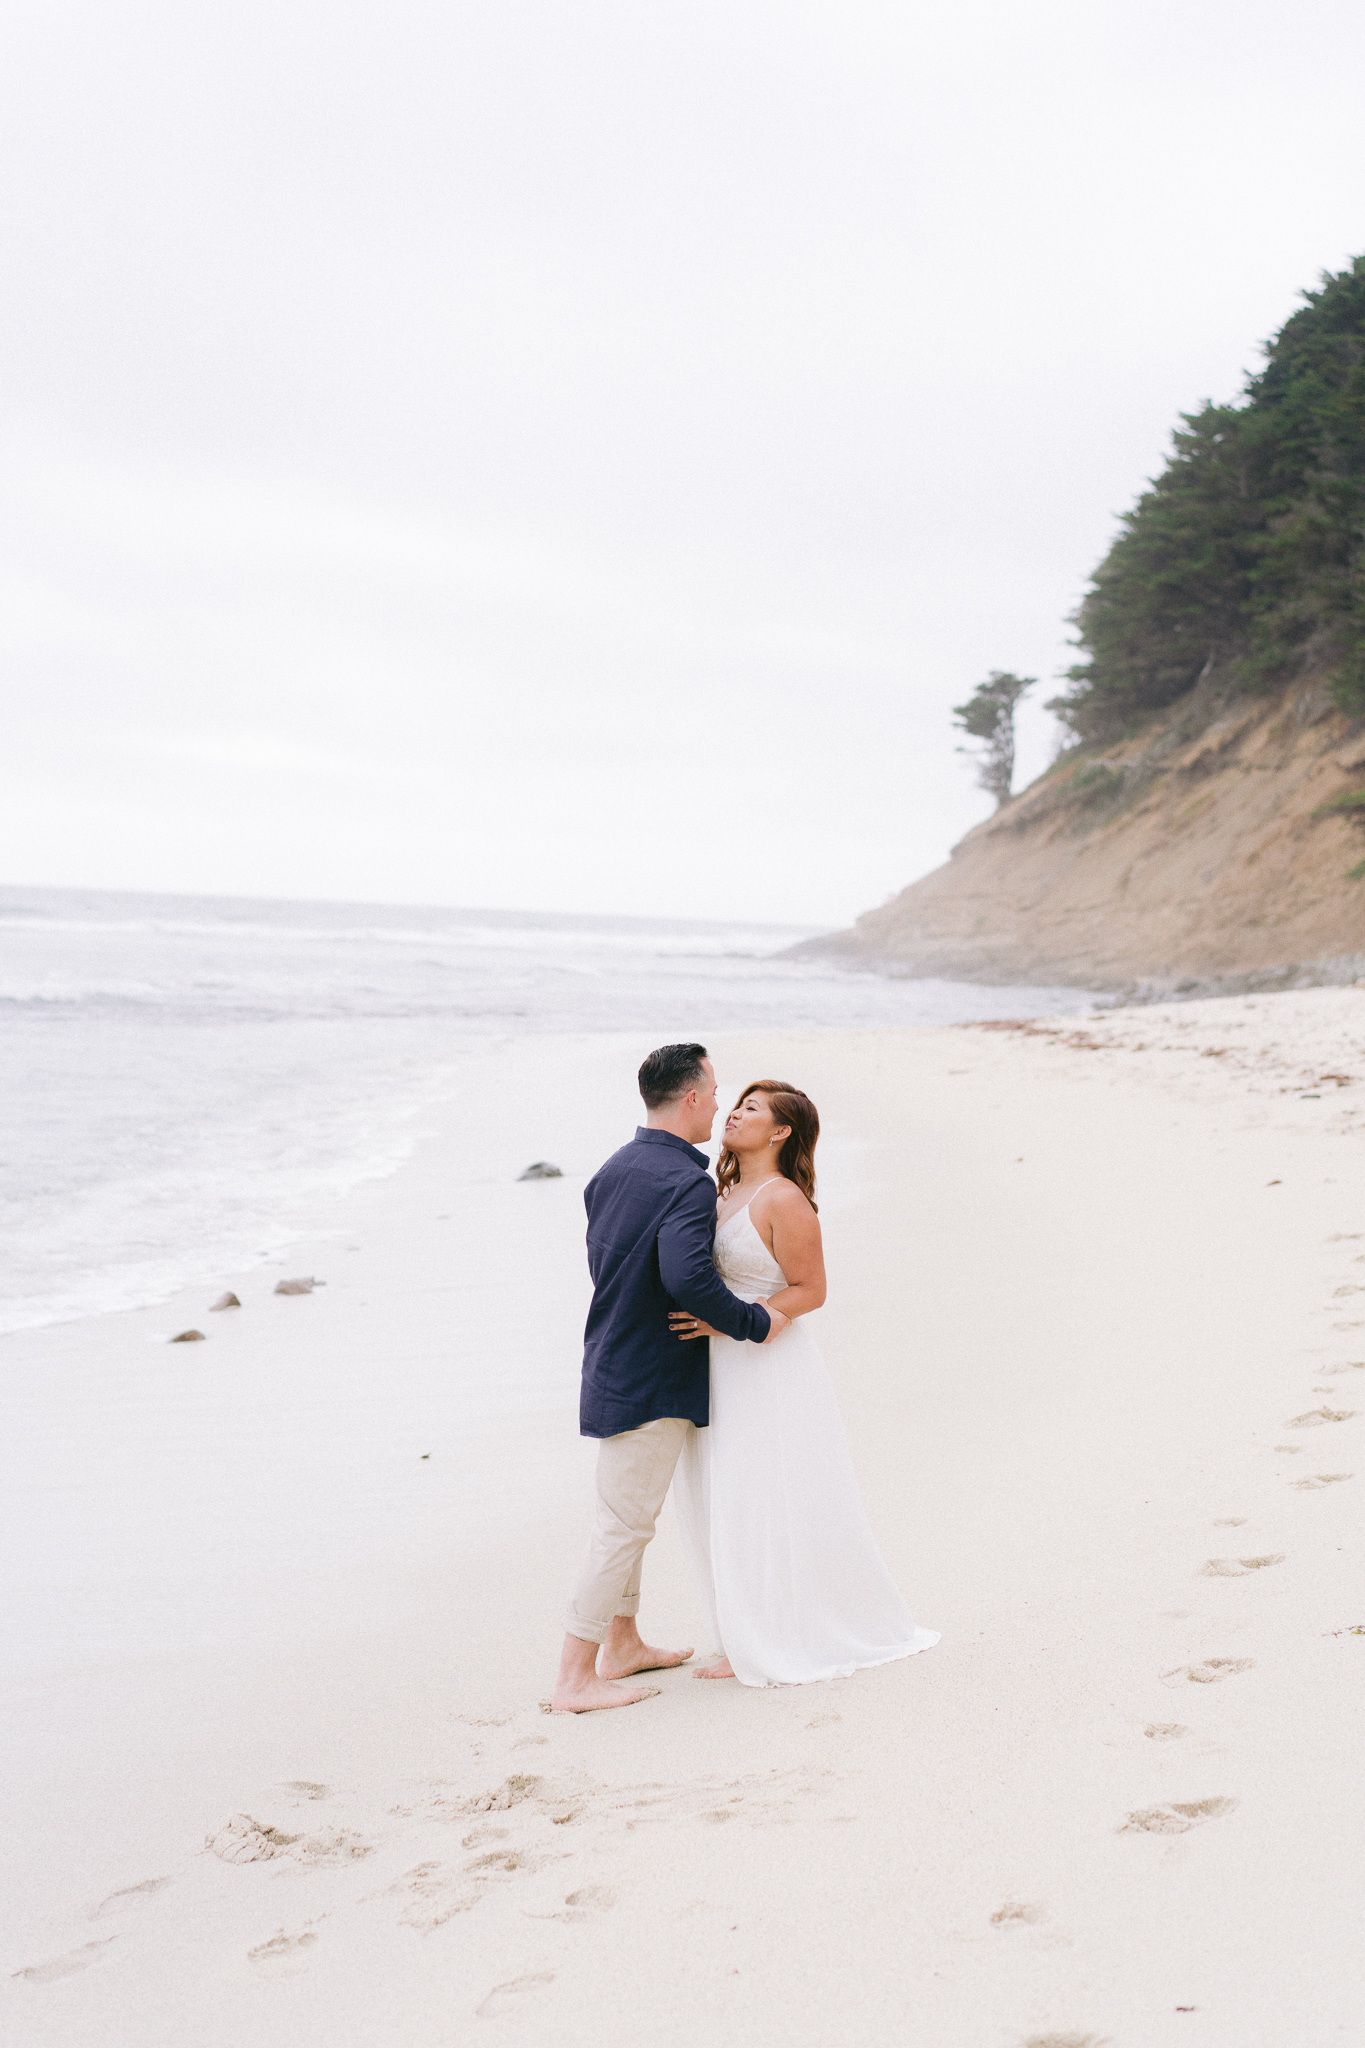 Fitzgerald Marine Reserve Engagement, Half Moon Bay Engagement, Beach Engagement, Monica and Lance July 2019-8.jpg